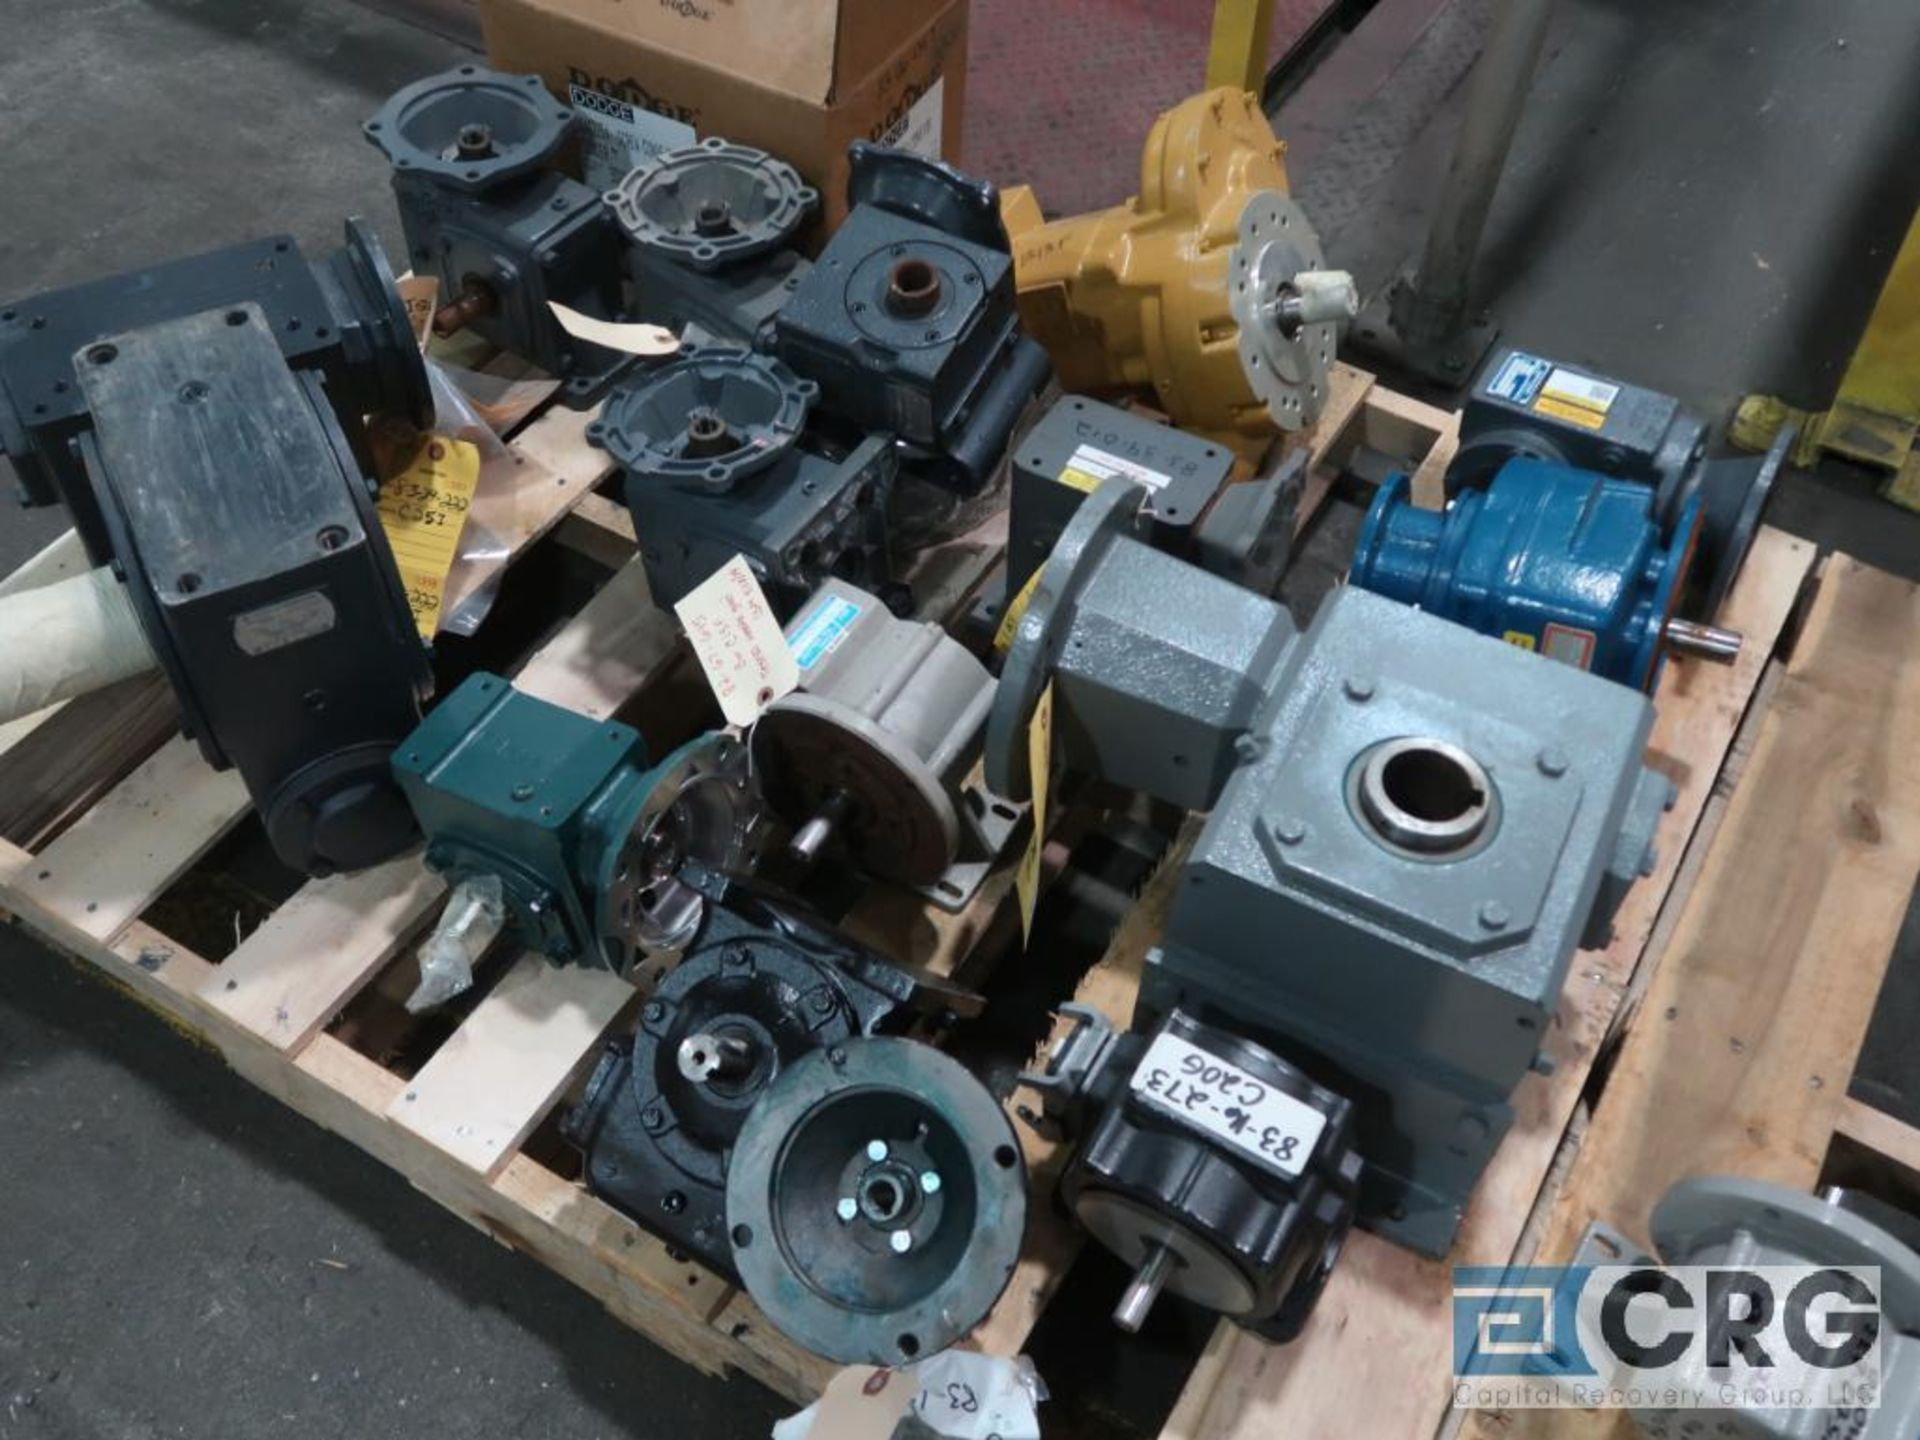 Lot of (20) gear drives with motors, various HPs (Finish Building) - Image 2 of 2